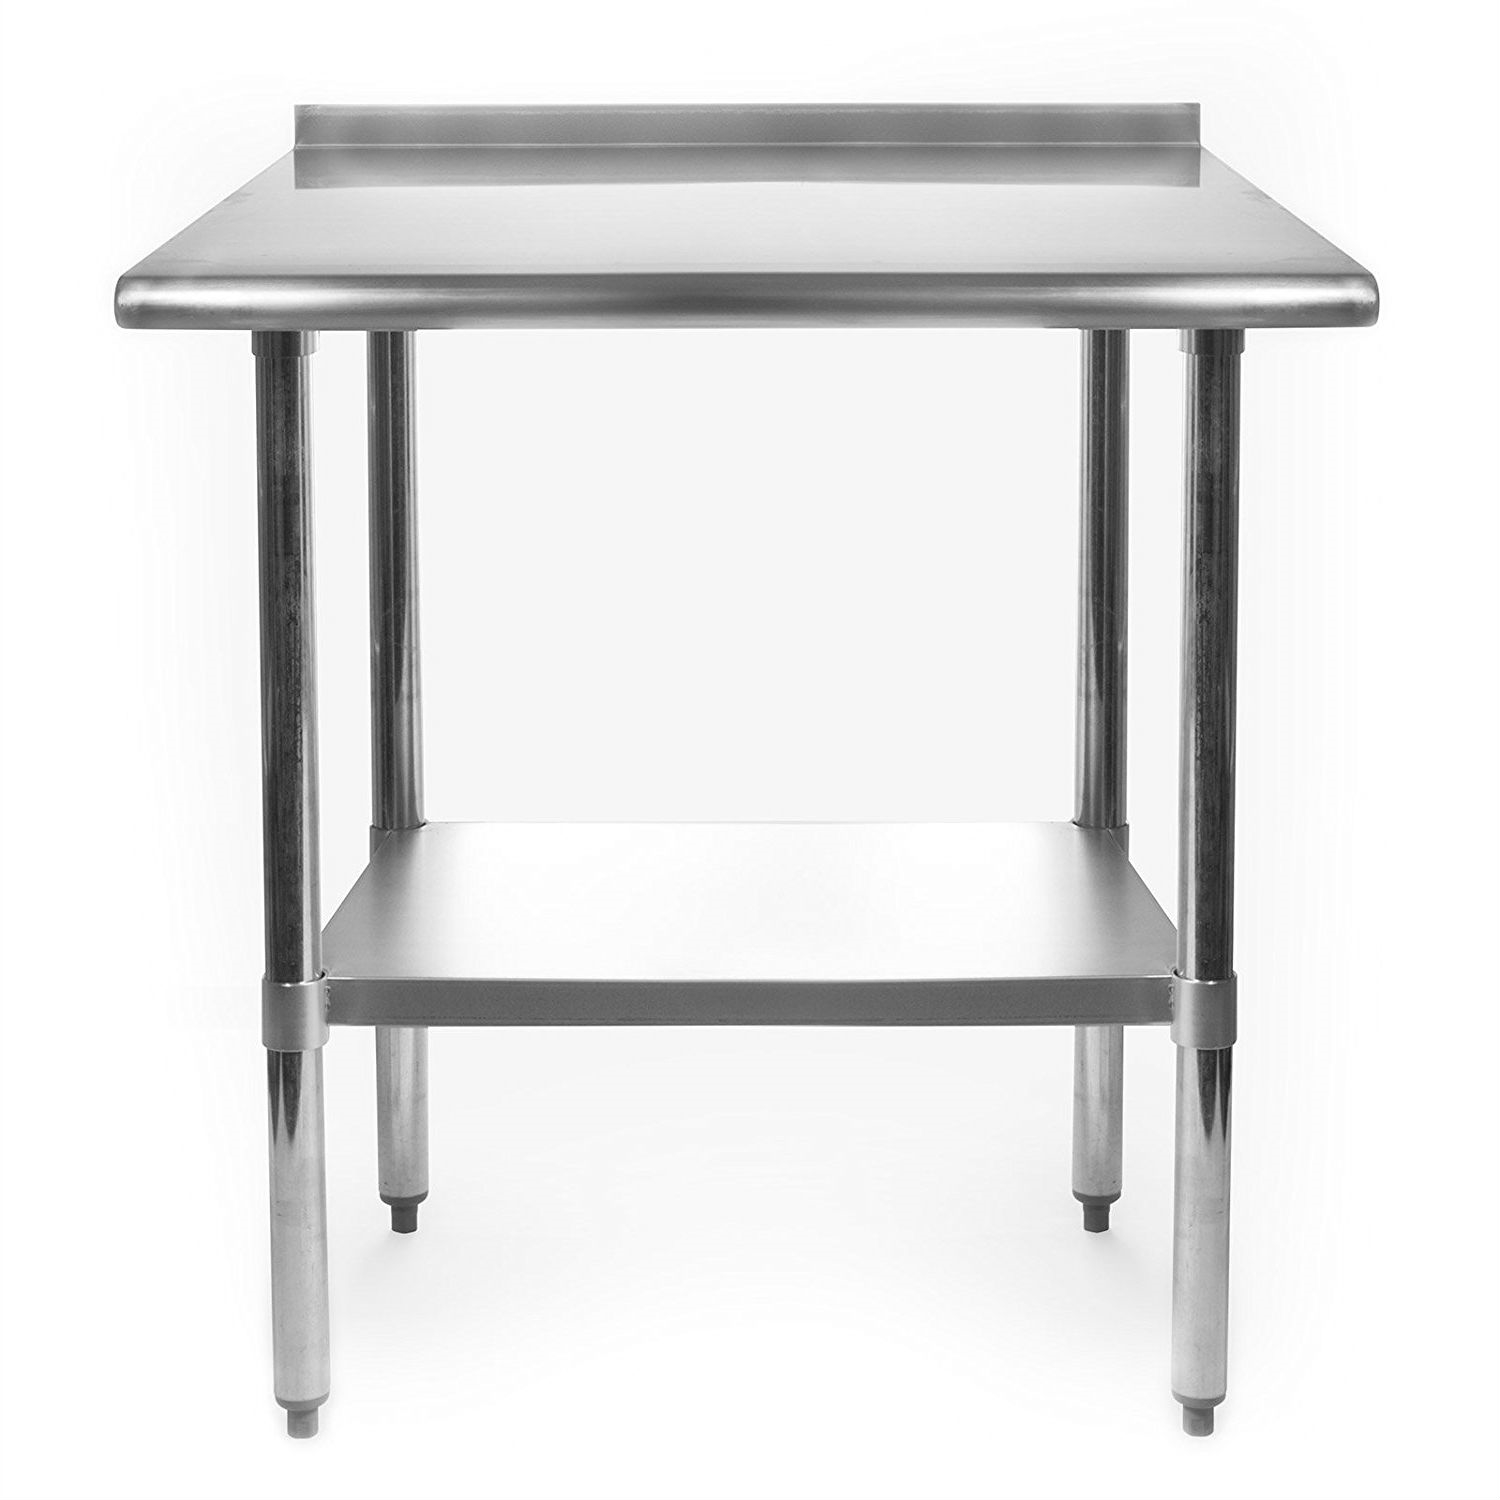 Restaurant Kitchen Work Tables heavy duty 30 x 24 inch stainless steel restaurant kitchen prep